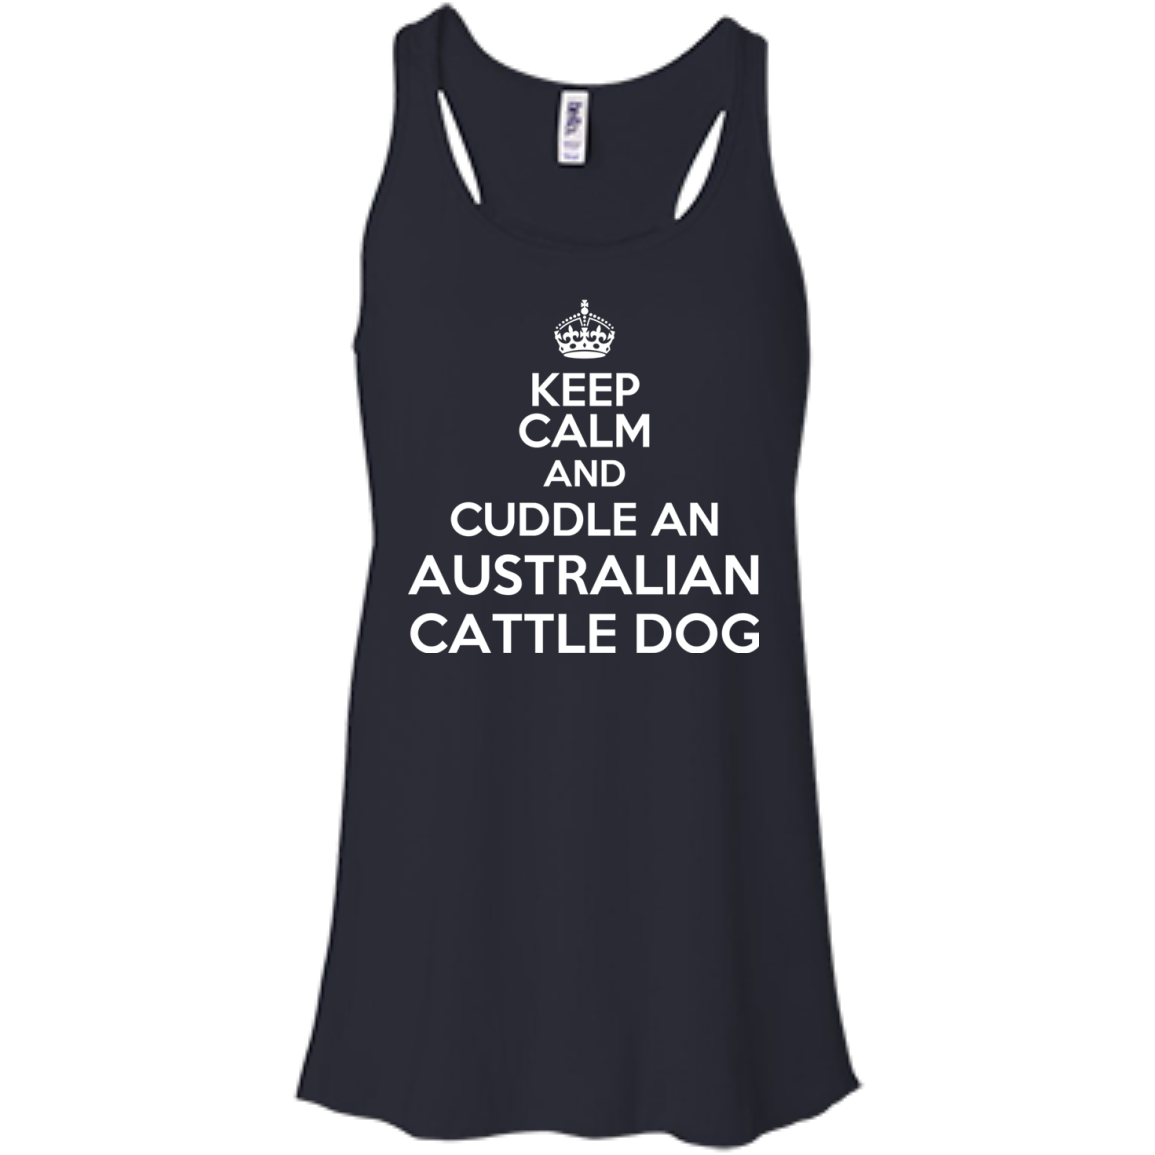 Keep Calm And Cuddle An Australian Cattle Dog Flowy Racerback Tanks